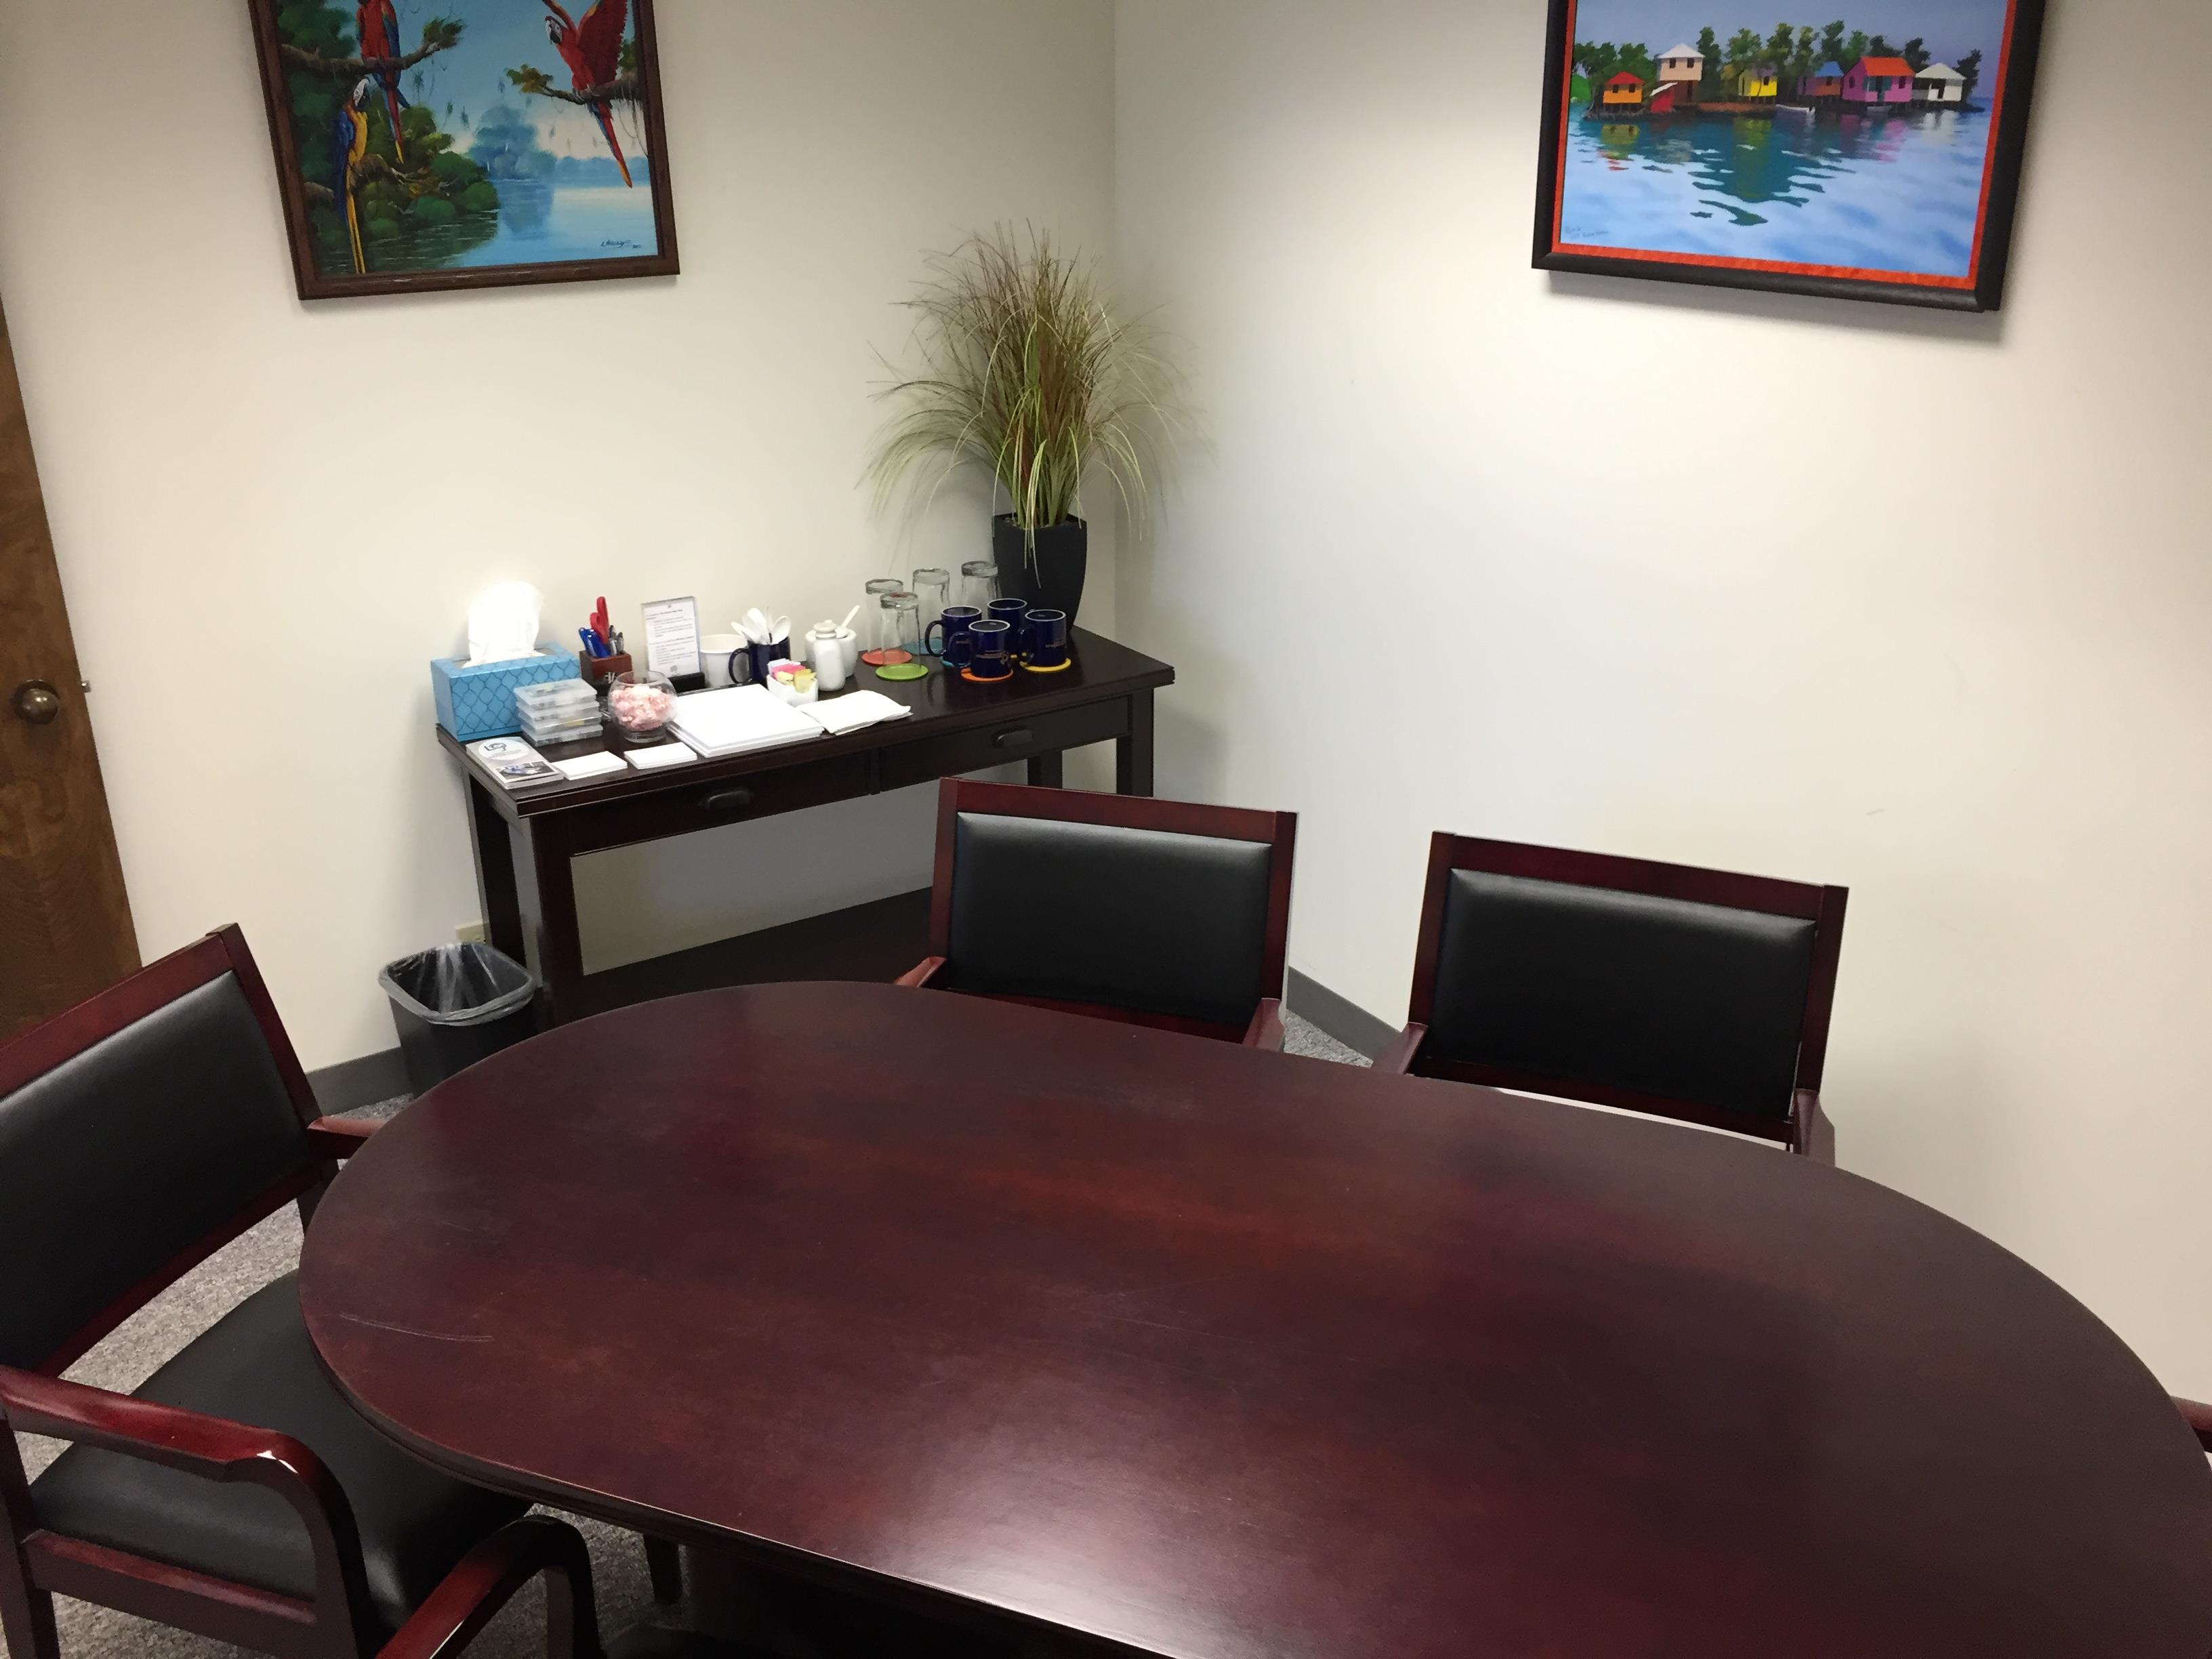 Lake Cook Reporting and Videoconferencing - Racetrack Conference Room